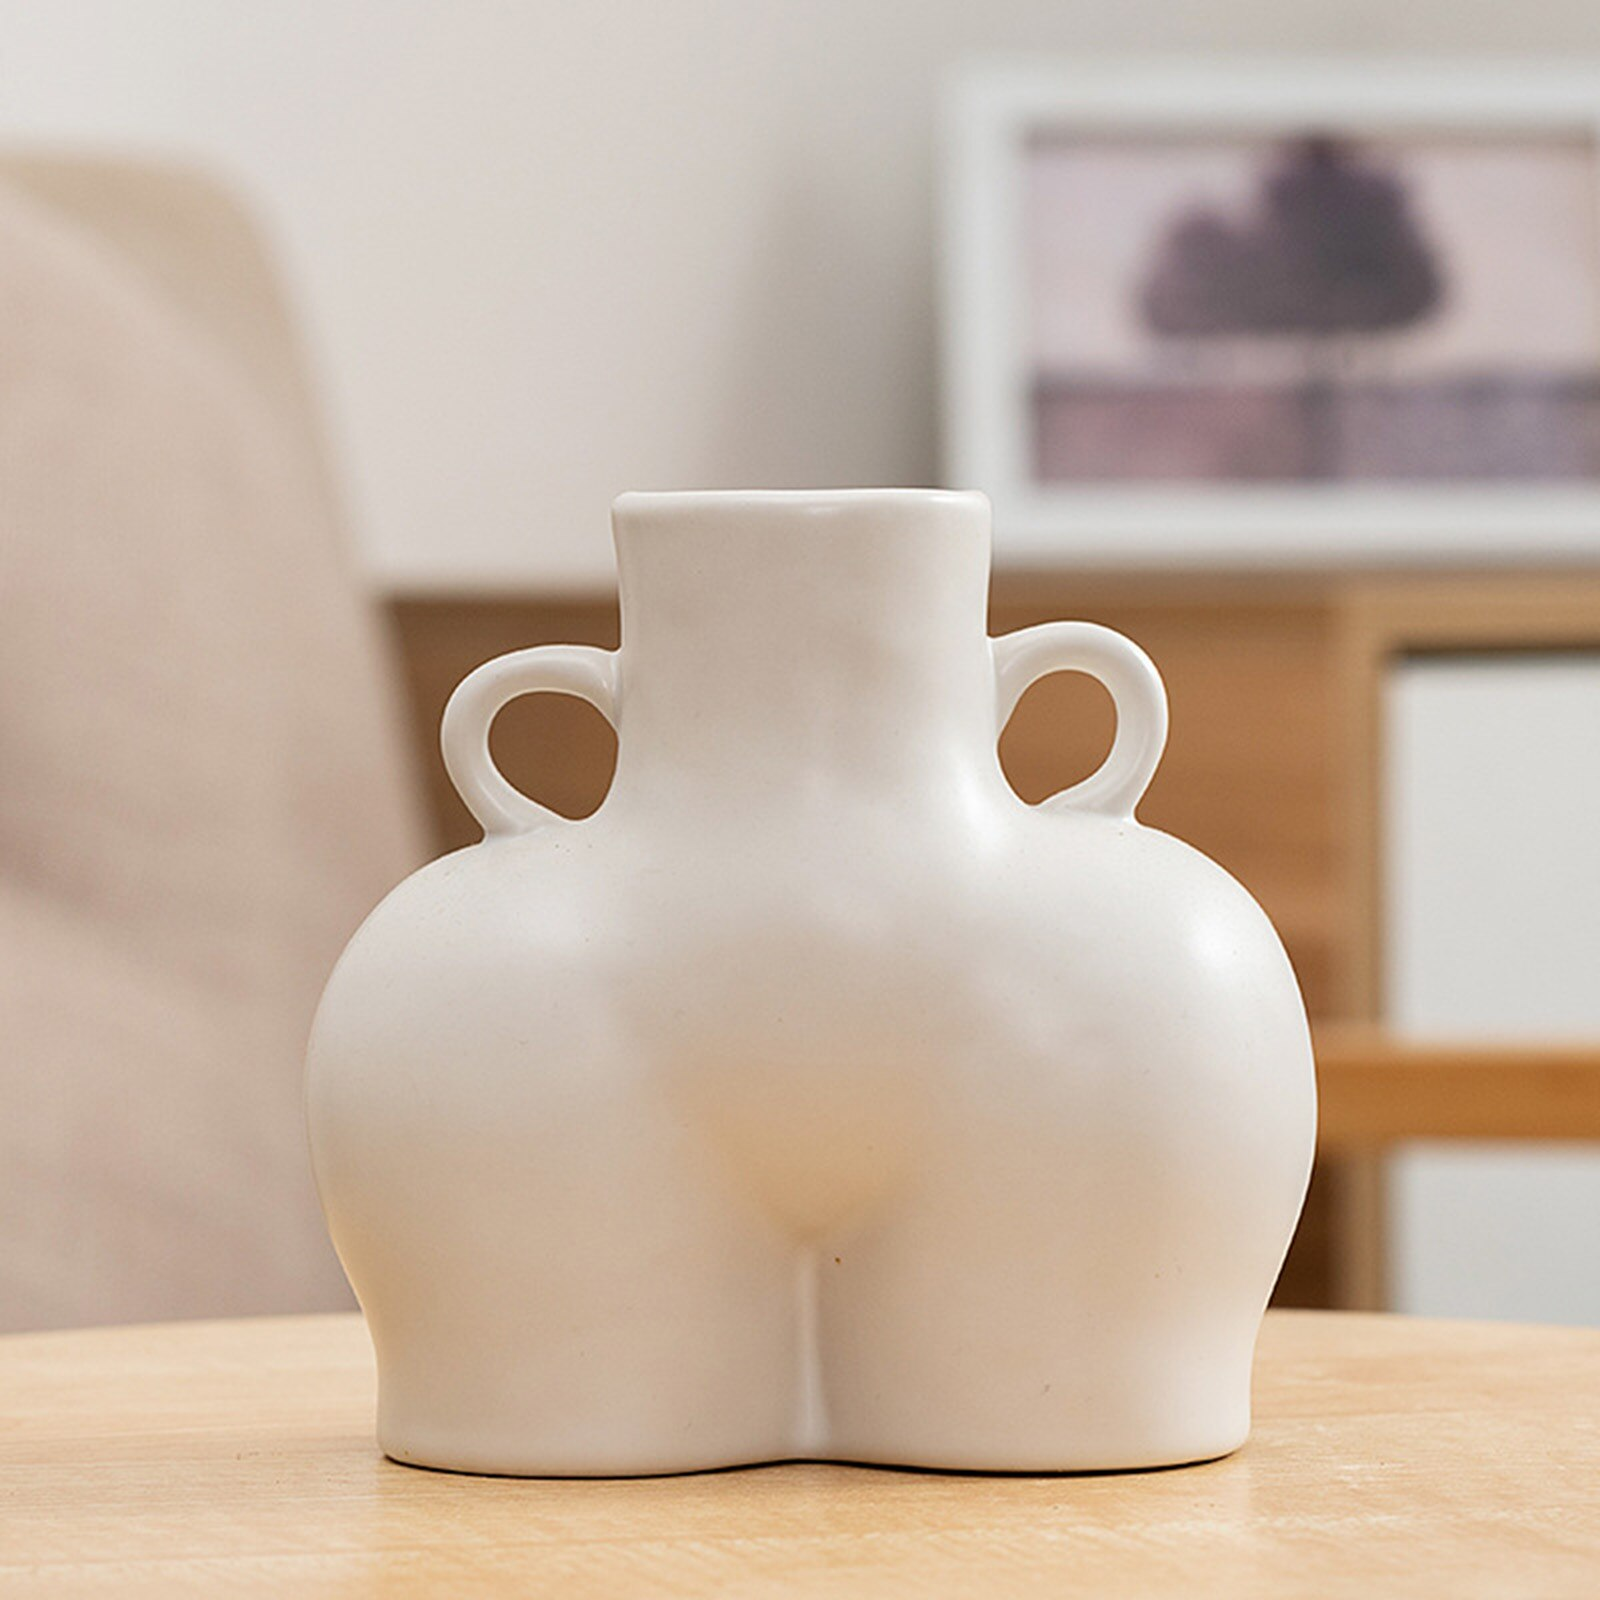 Ceramic Vase, Desktop Plant Container, Human Body Shaped Art Creative Decorative Flower Pot Side Ring Handle New Style 2021